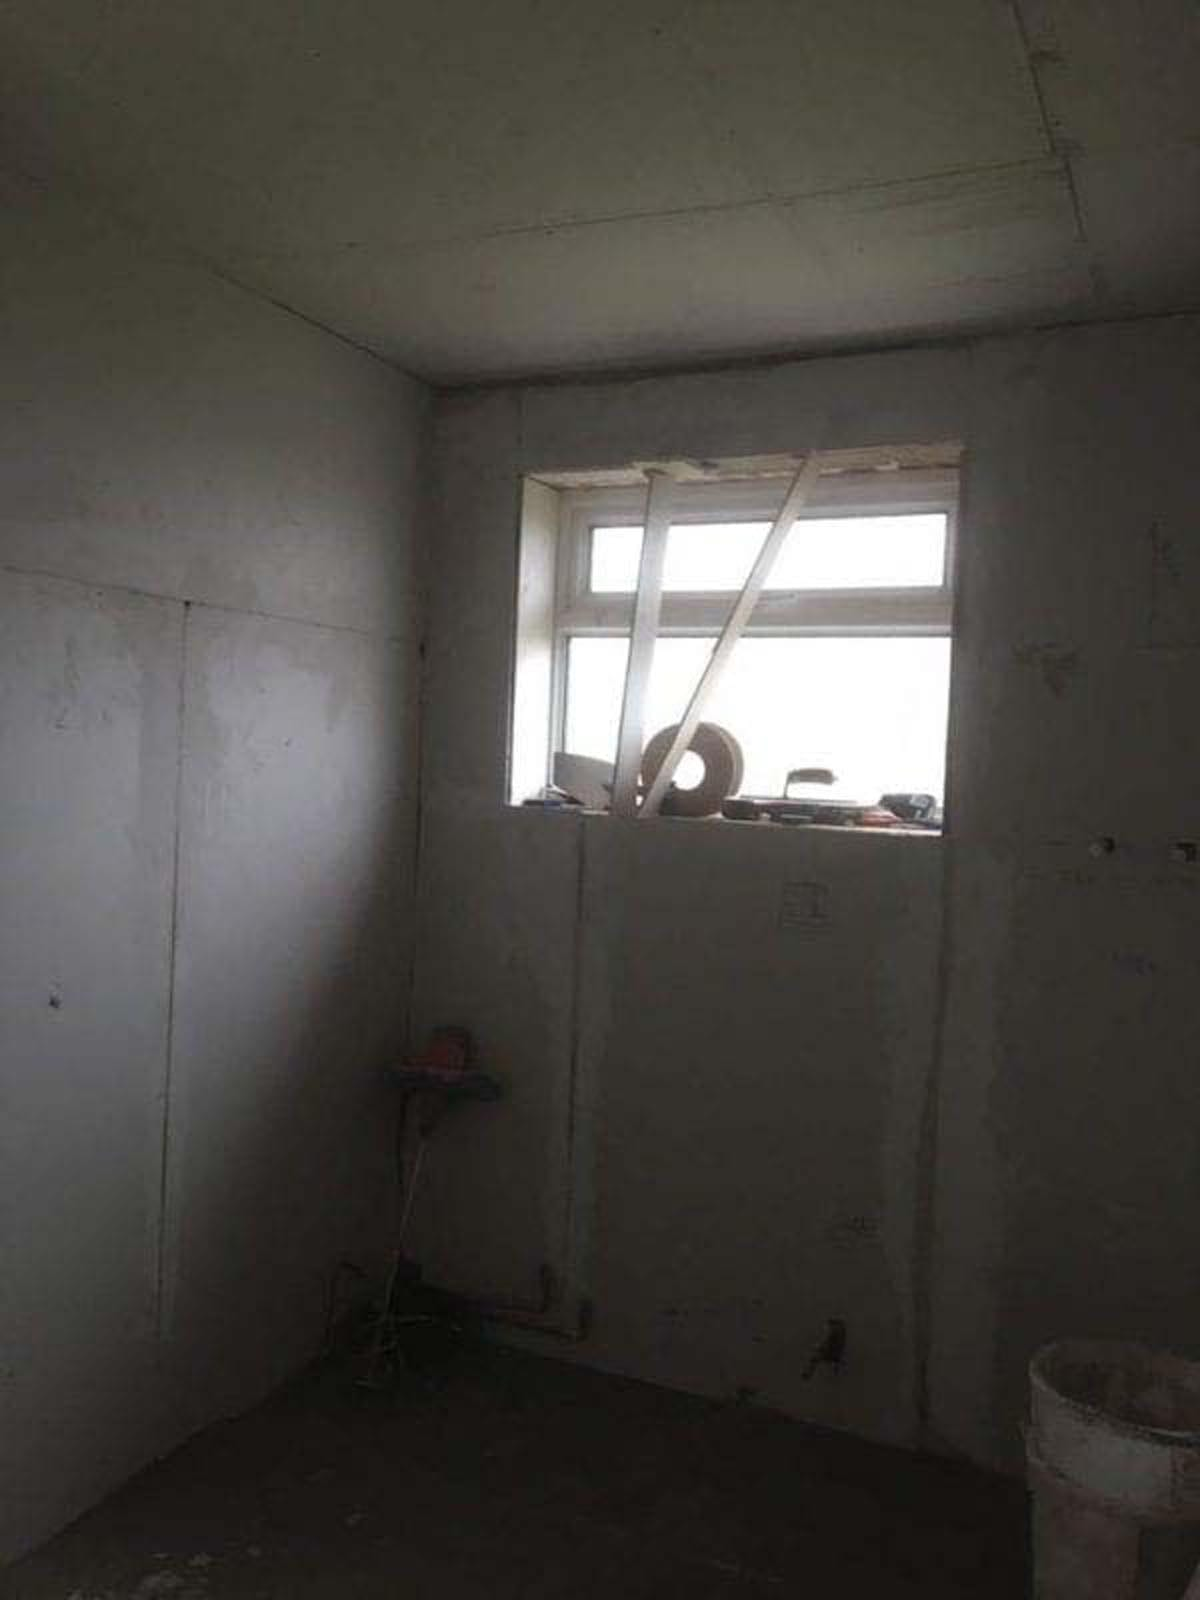 Mr and Mrs O'Dwyers Kitchen and Bathroom Transformation